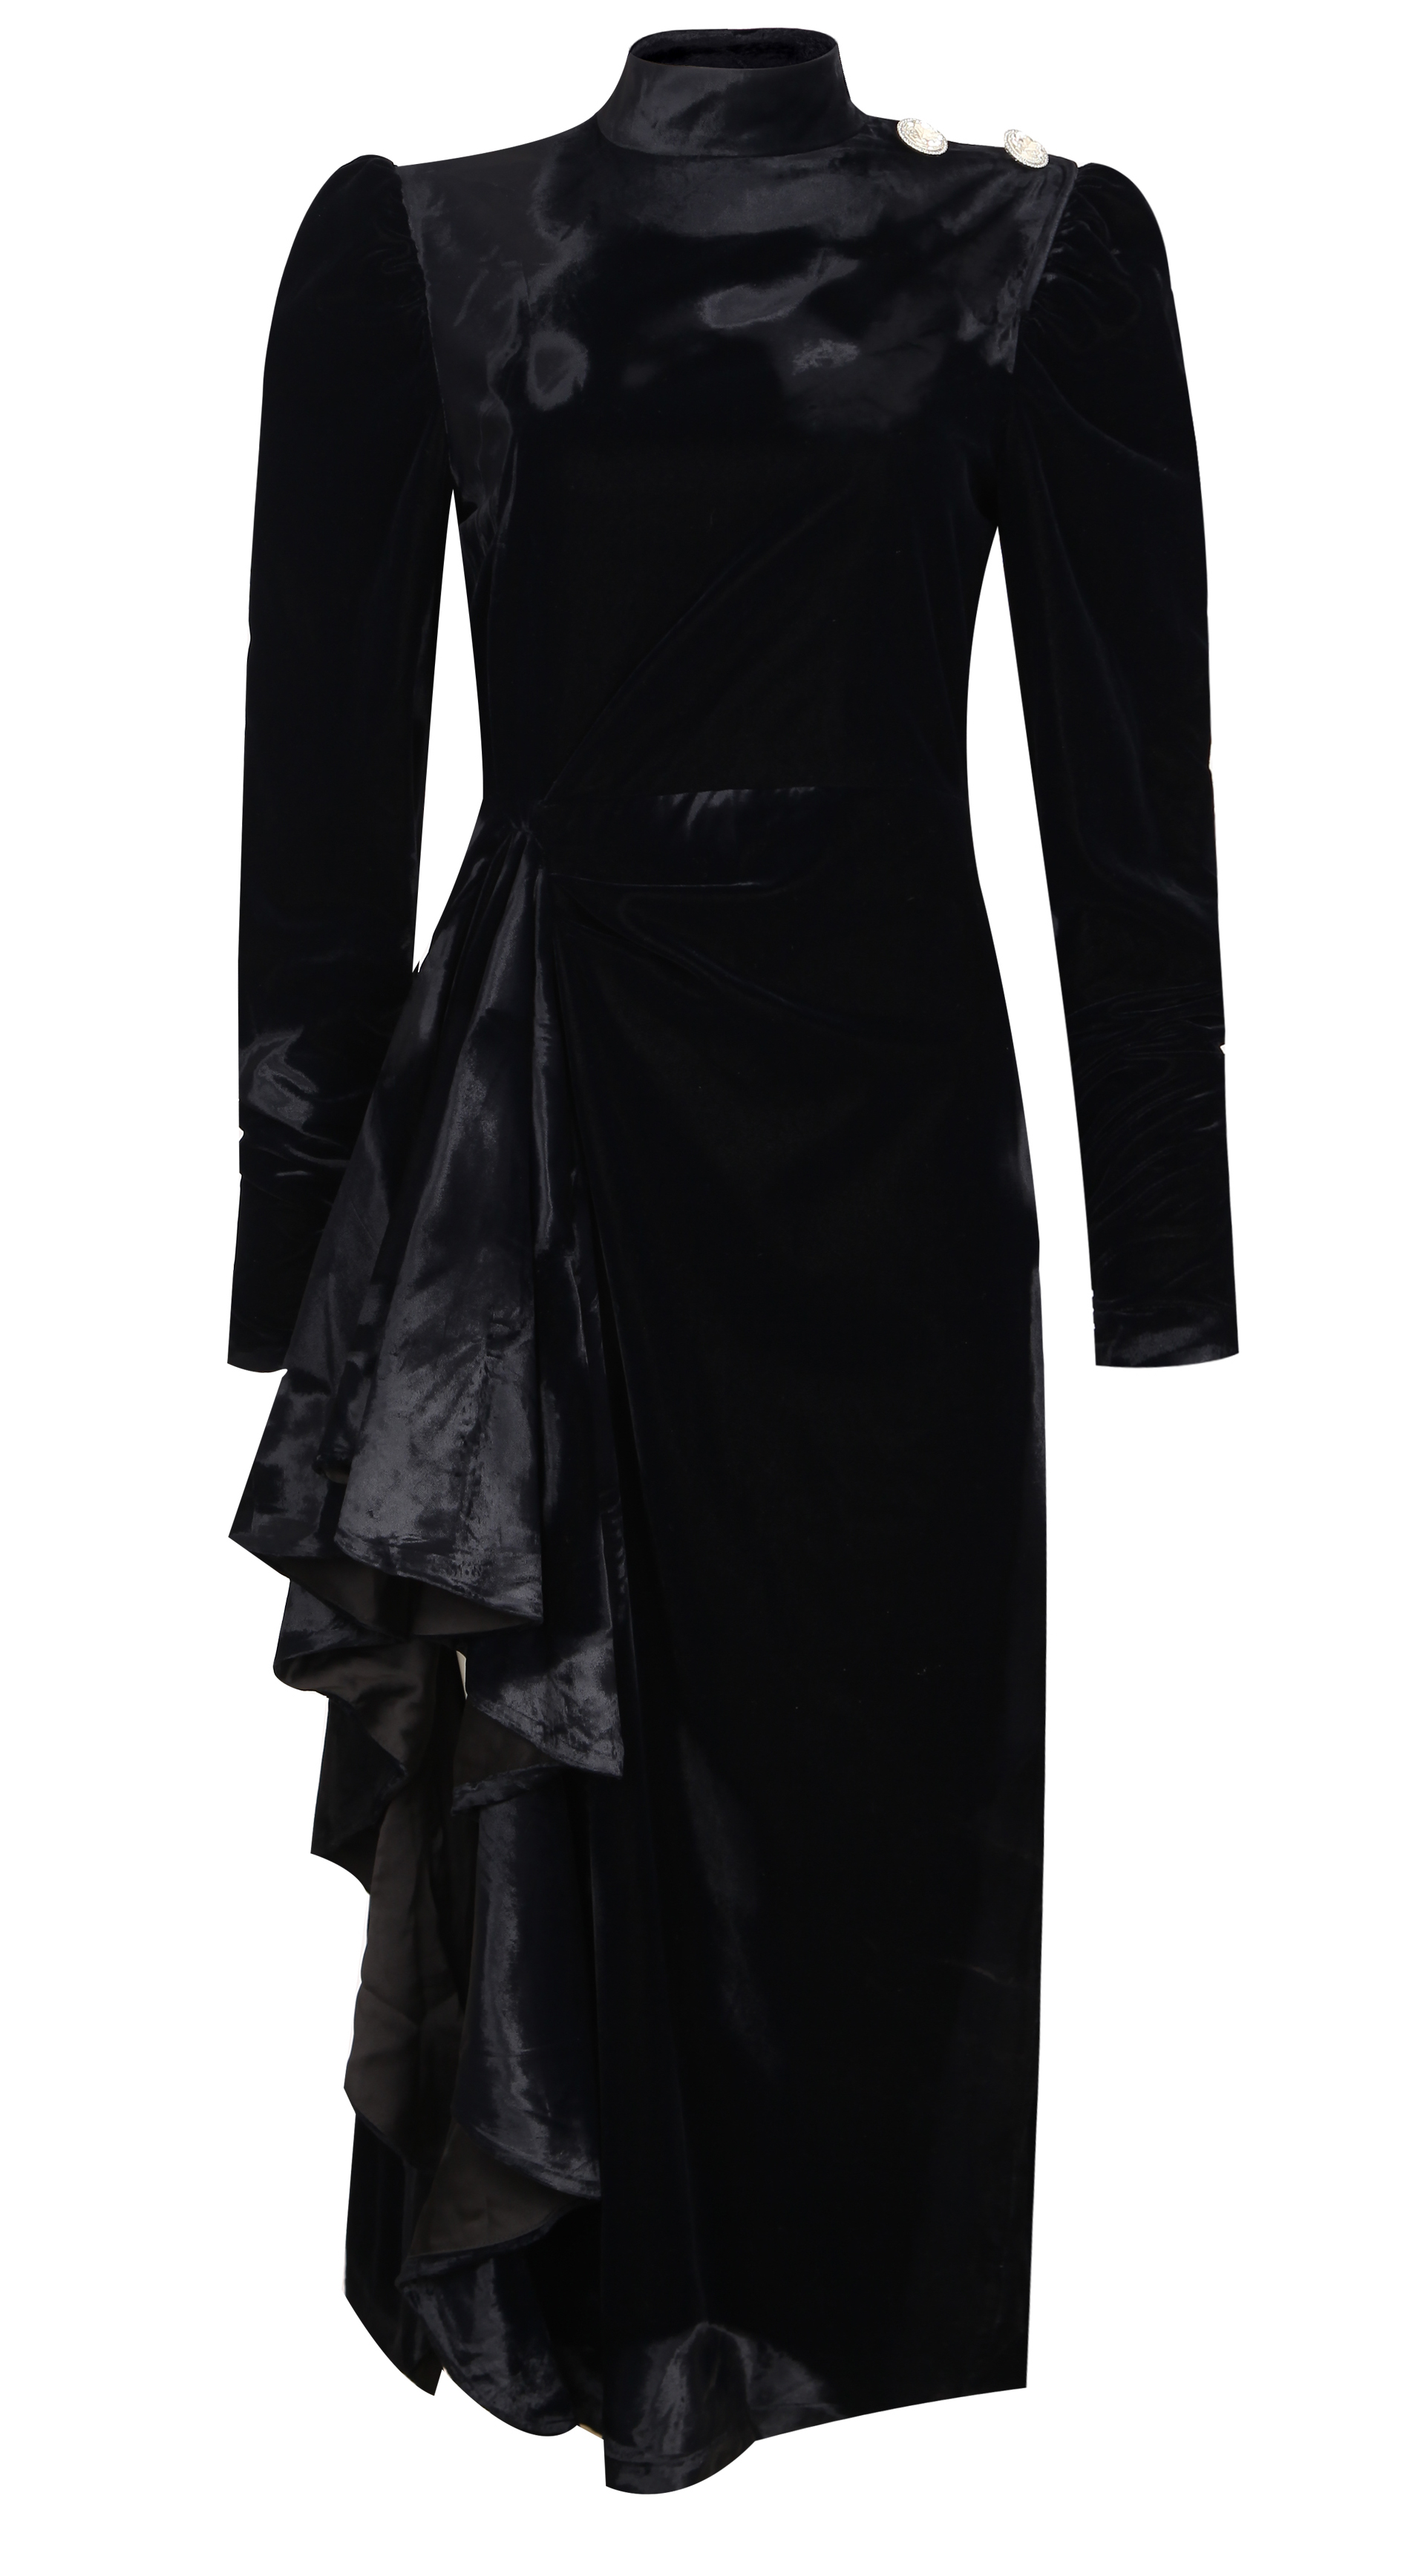 Louise Dress by Rue Agthonis on curated-crowd.com